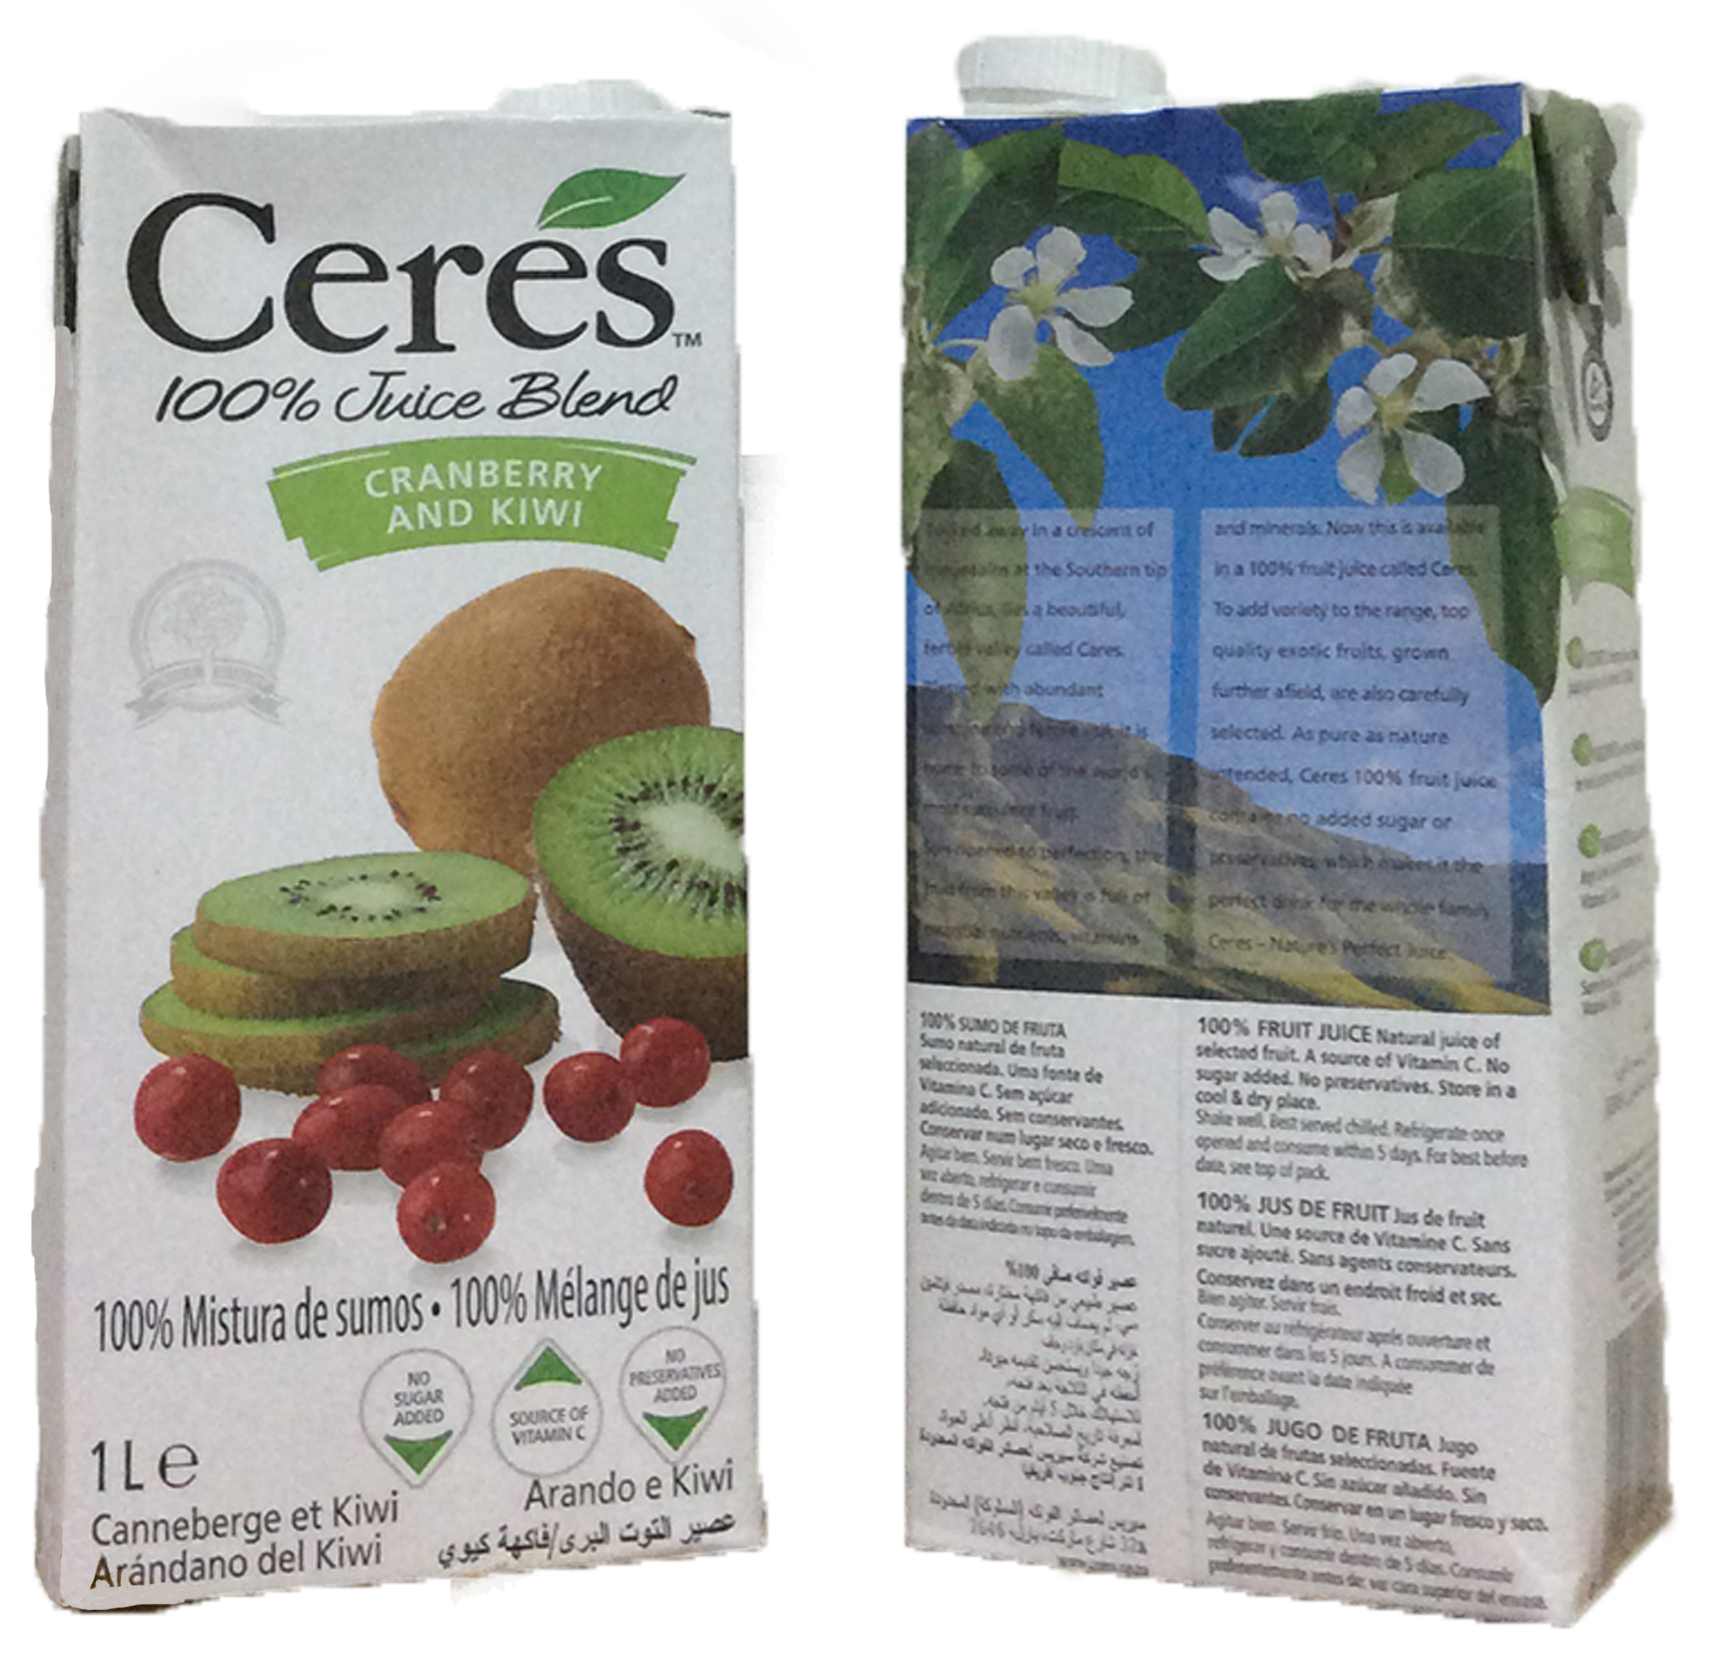 Ceres Cranberry & Kiwi Juice